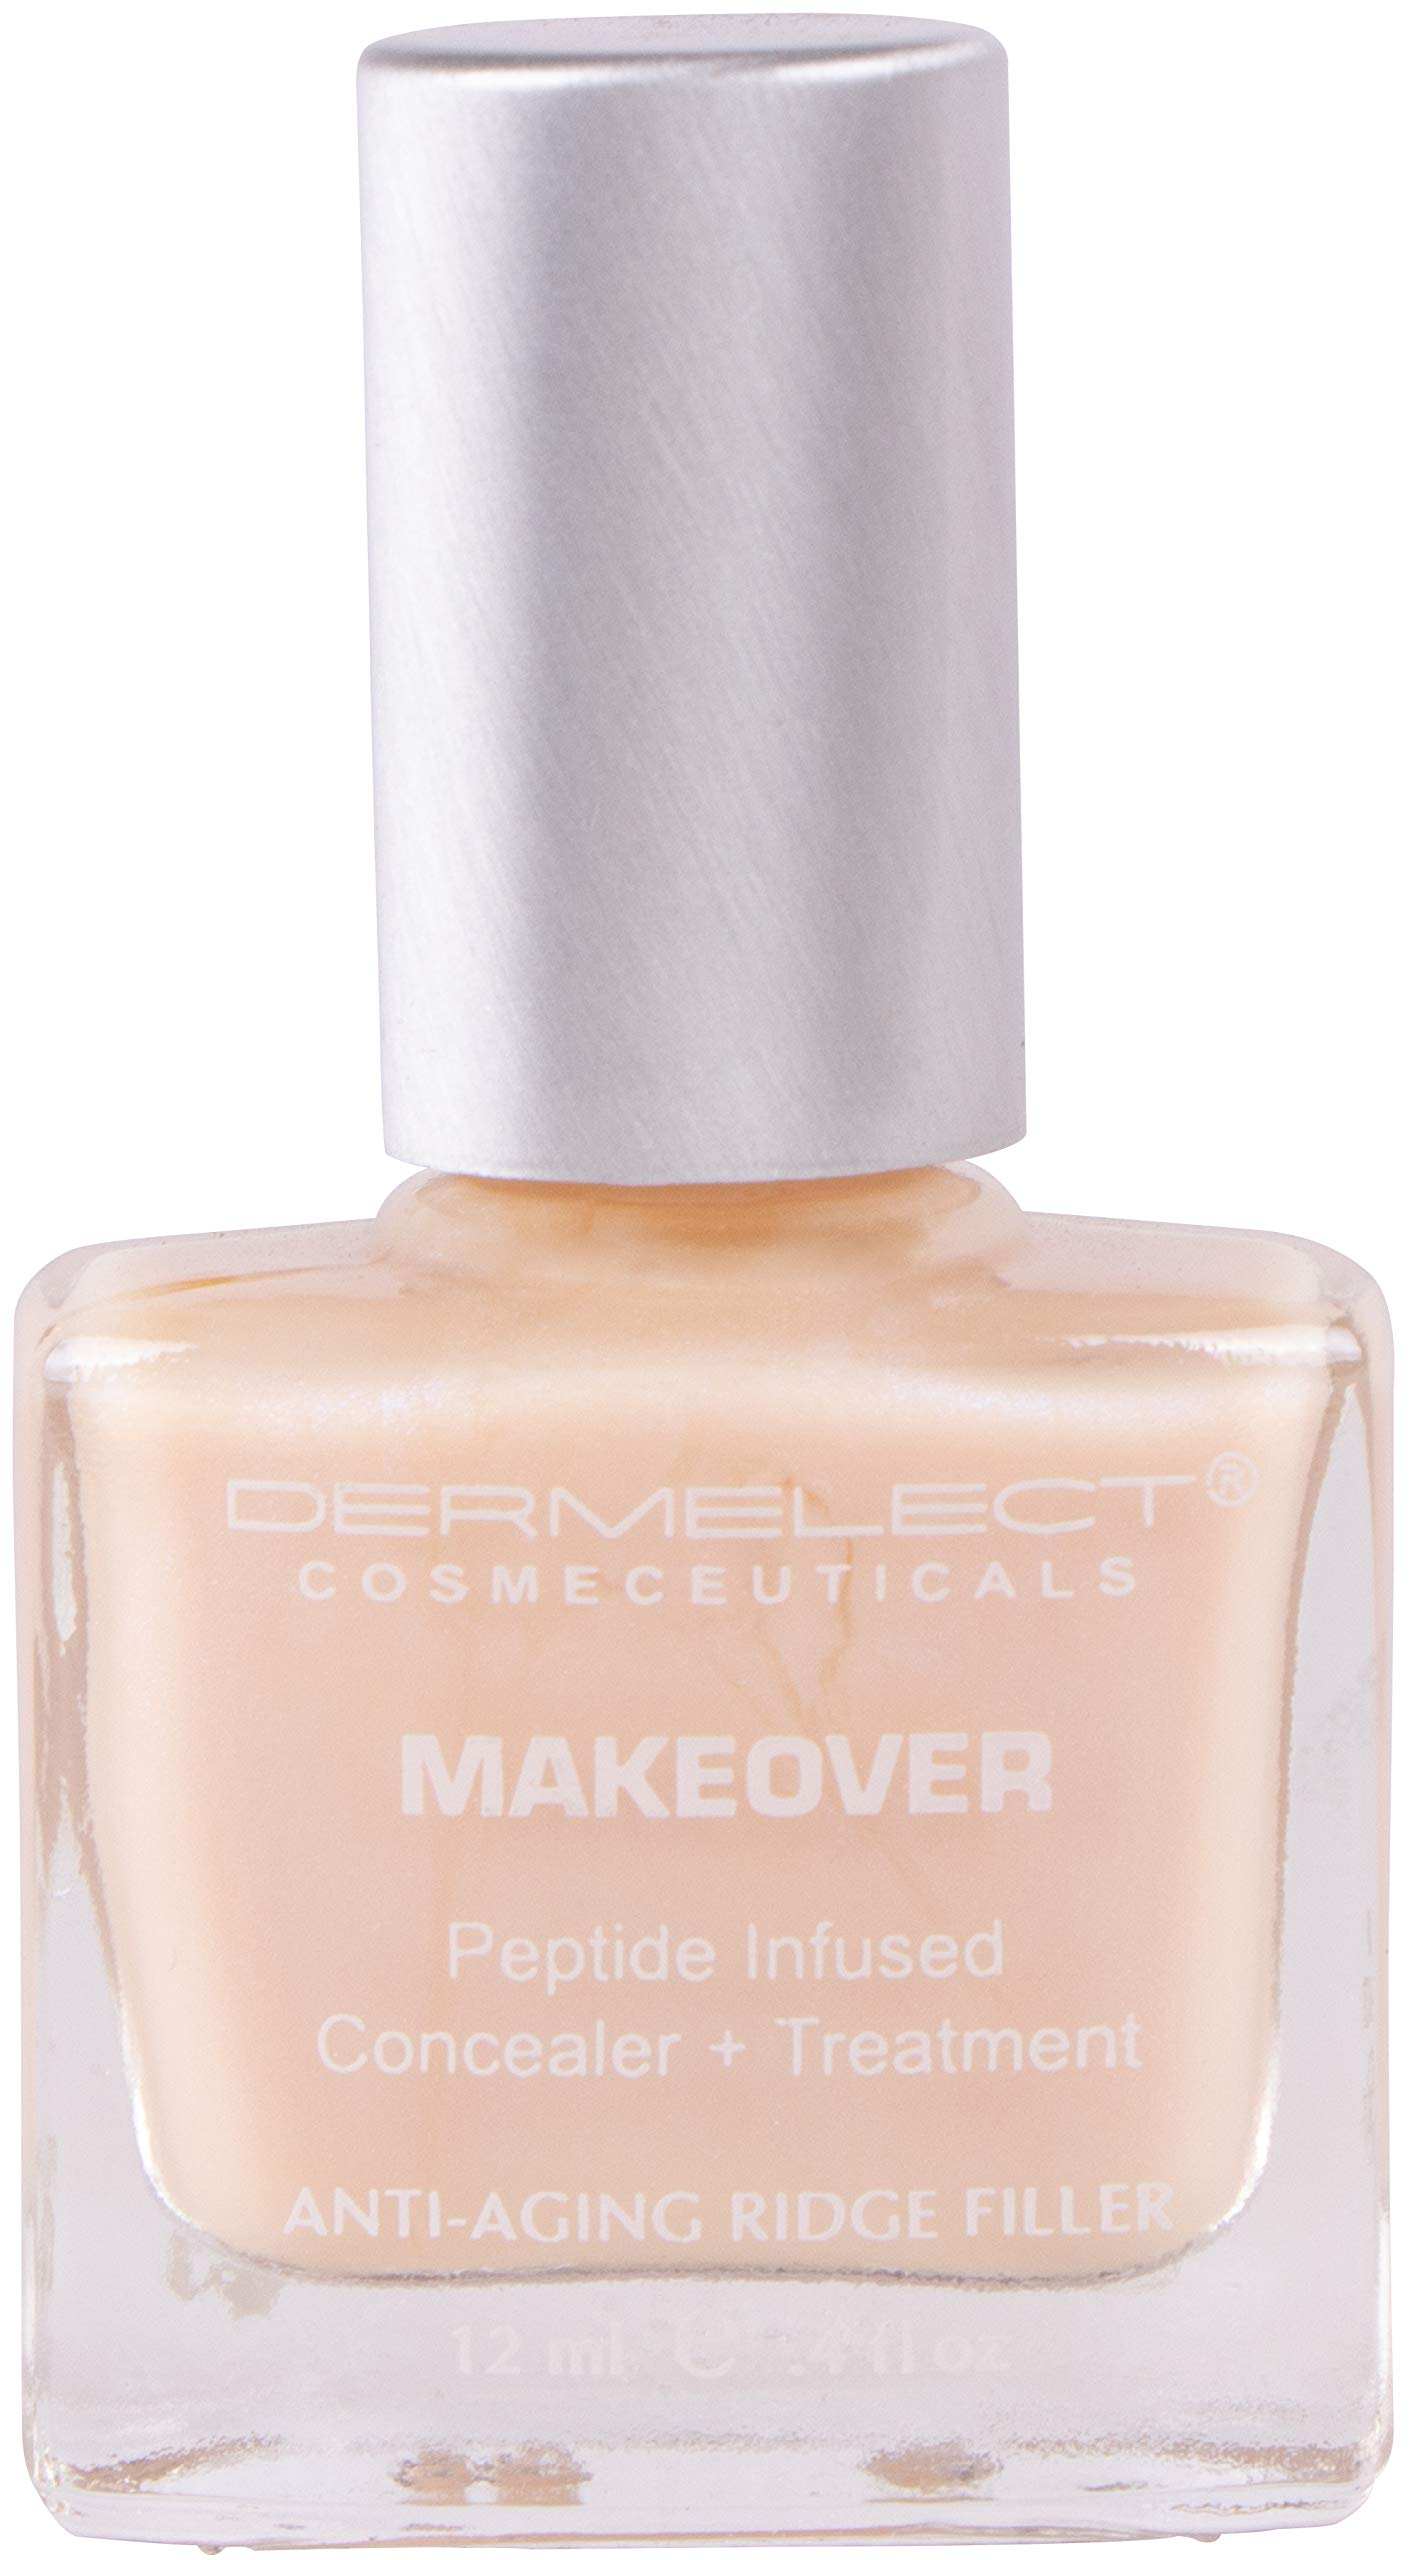 DERMELECT COSMECEUTICALS Makeover Ridge Filler Base Coat - Conceal And Fill In Unsightly Nail Ridges & Strengthen Brittle Nails (0. 4 Fluid Ounce / 11 Milliliter) by Dermelect